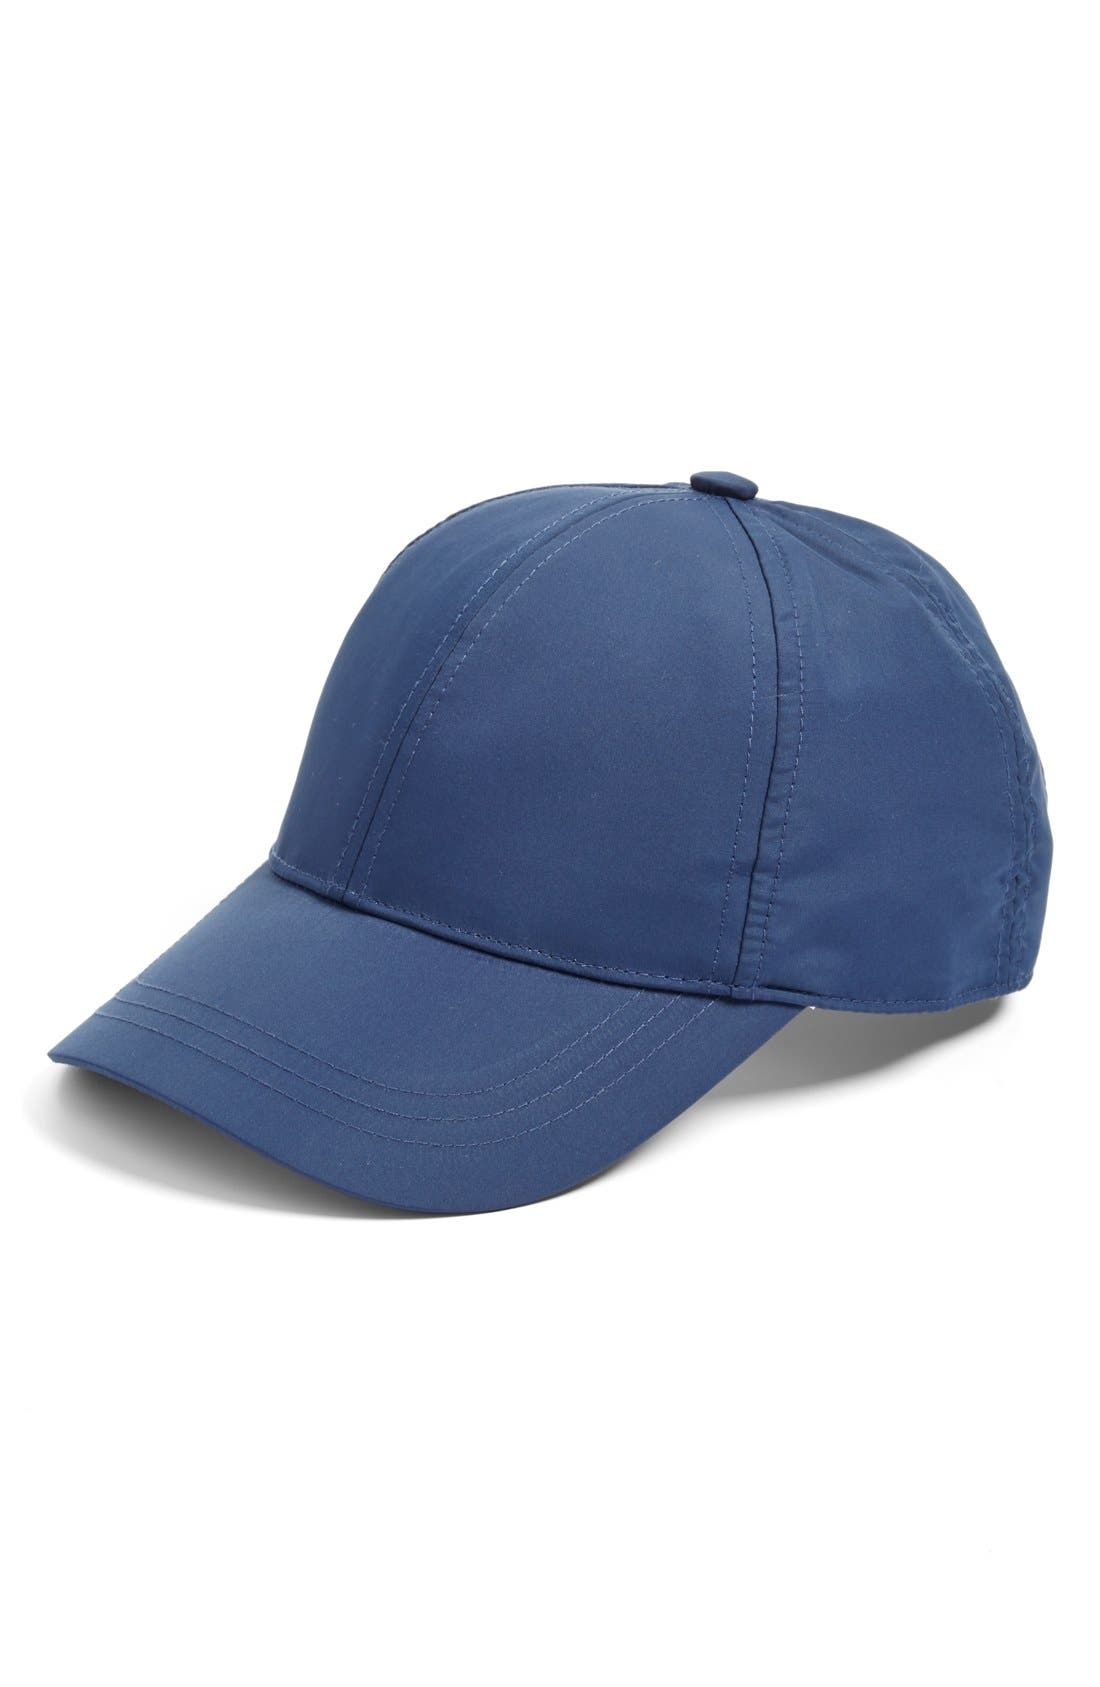 AUGUST HAT Nylon Baseball Cap